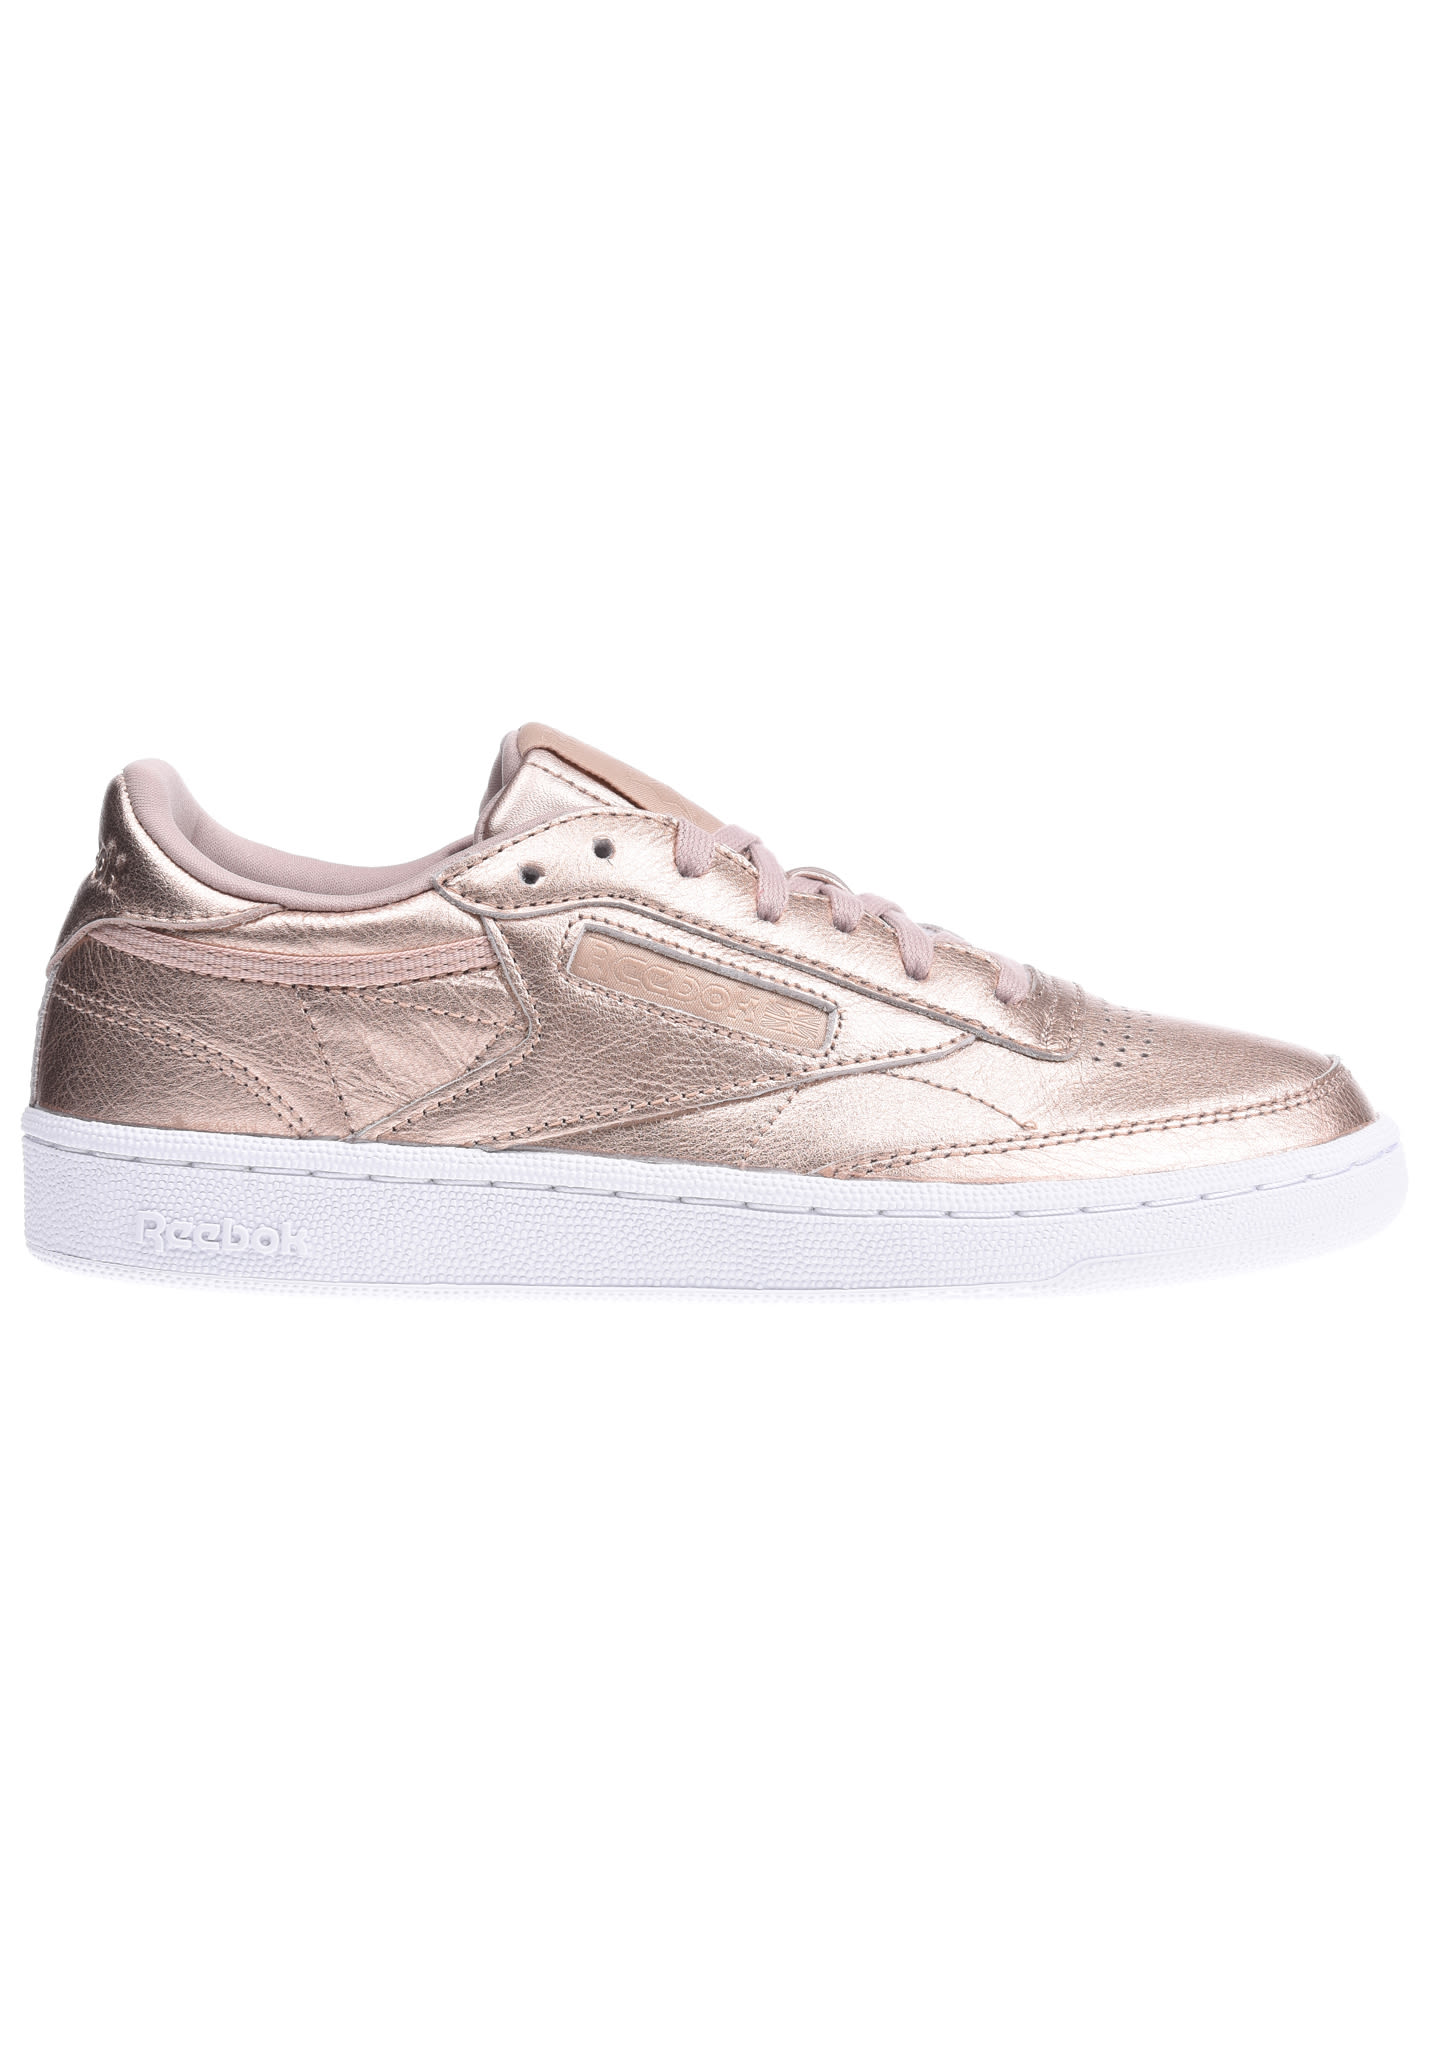 52c520a0613 Reebok Club C 85 Melted Metal - Baskets pour Femme - Rose - Planet Sports